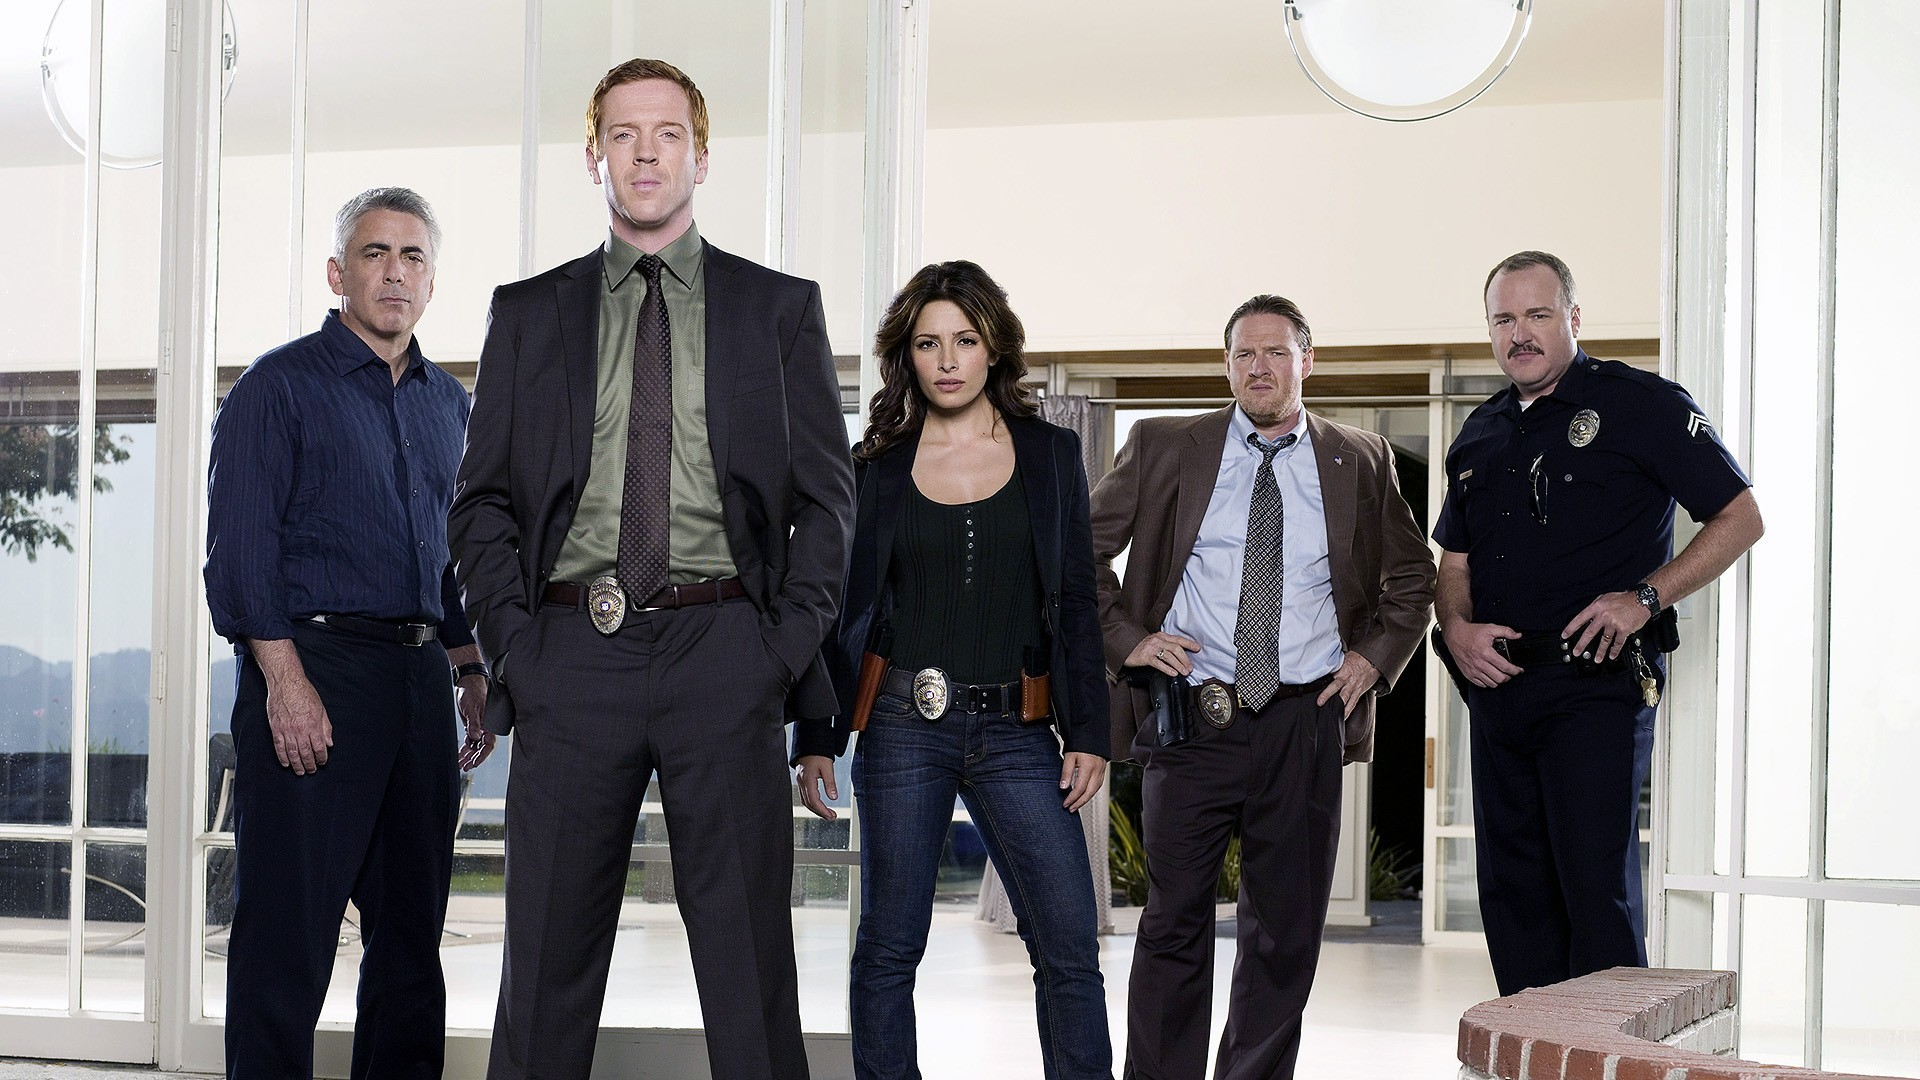 TV Movies police Sarah HD Wallpaper